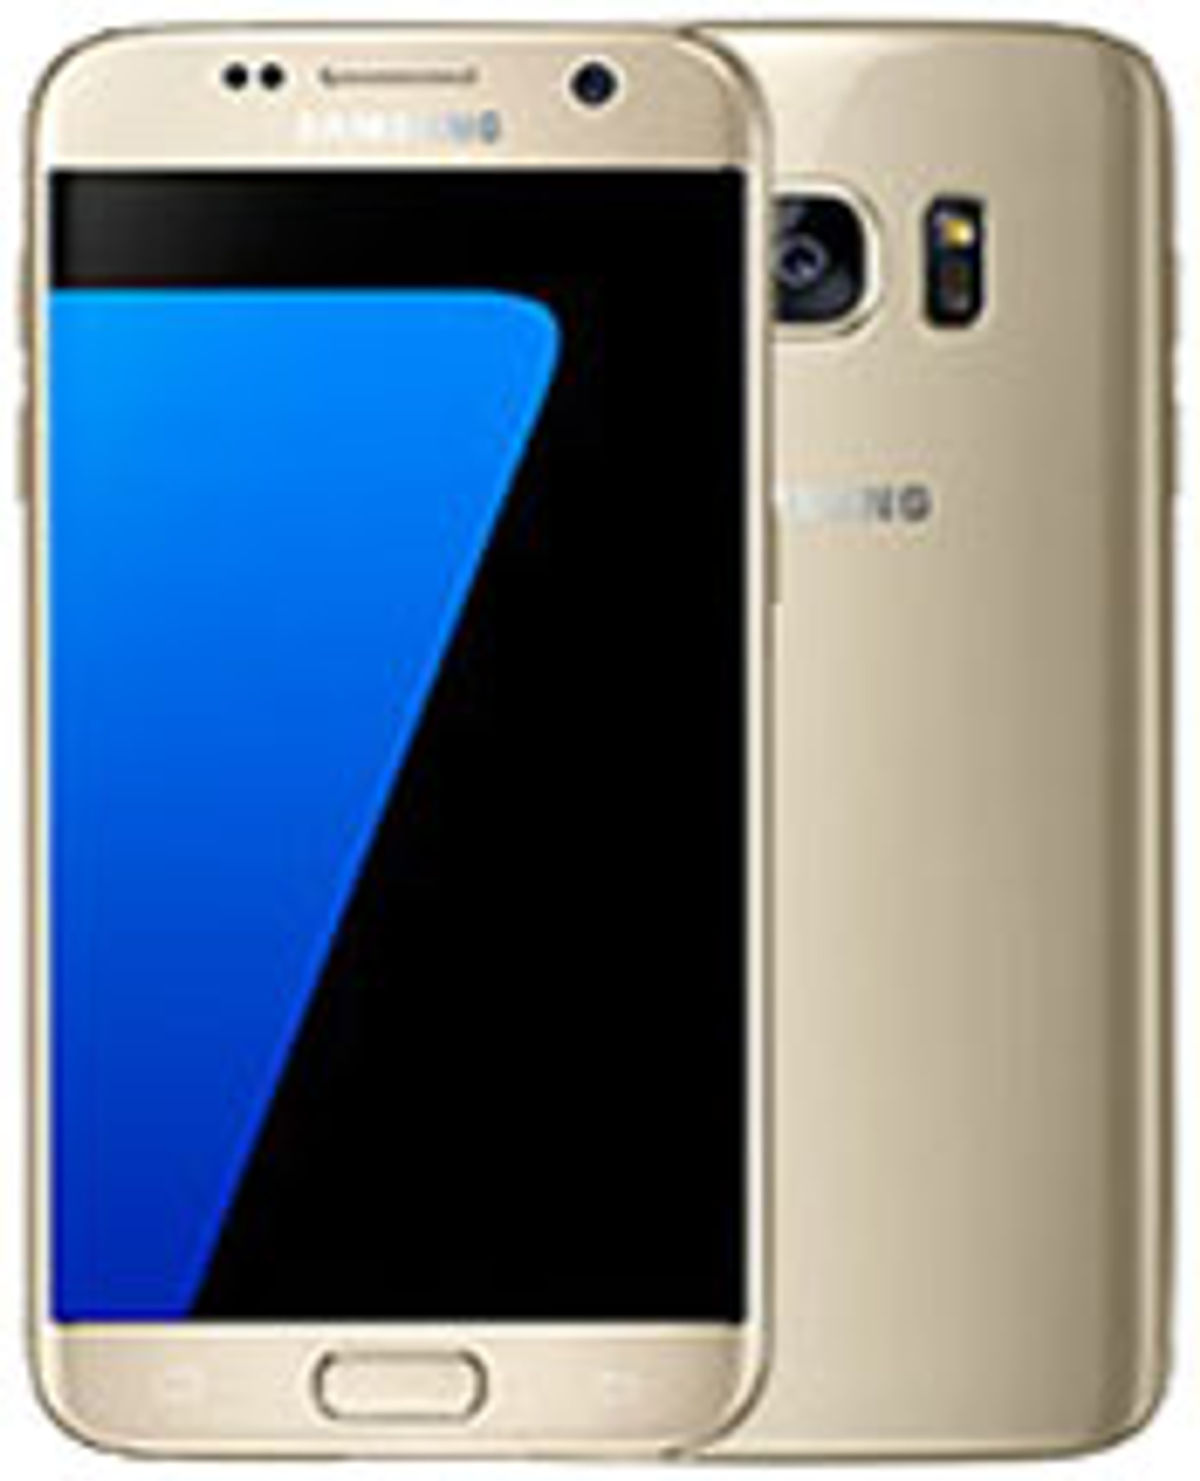 Best Samsung Phones In India 25 June 2020 Latest Smartphones